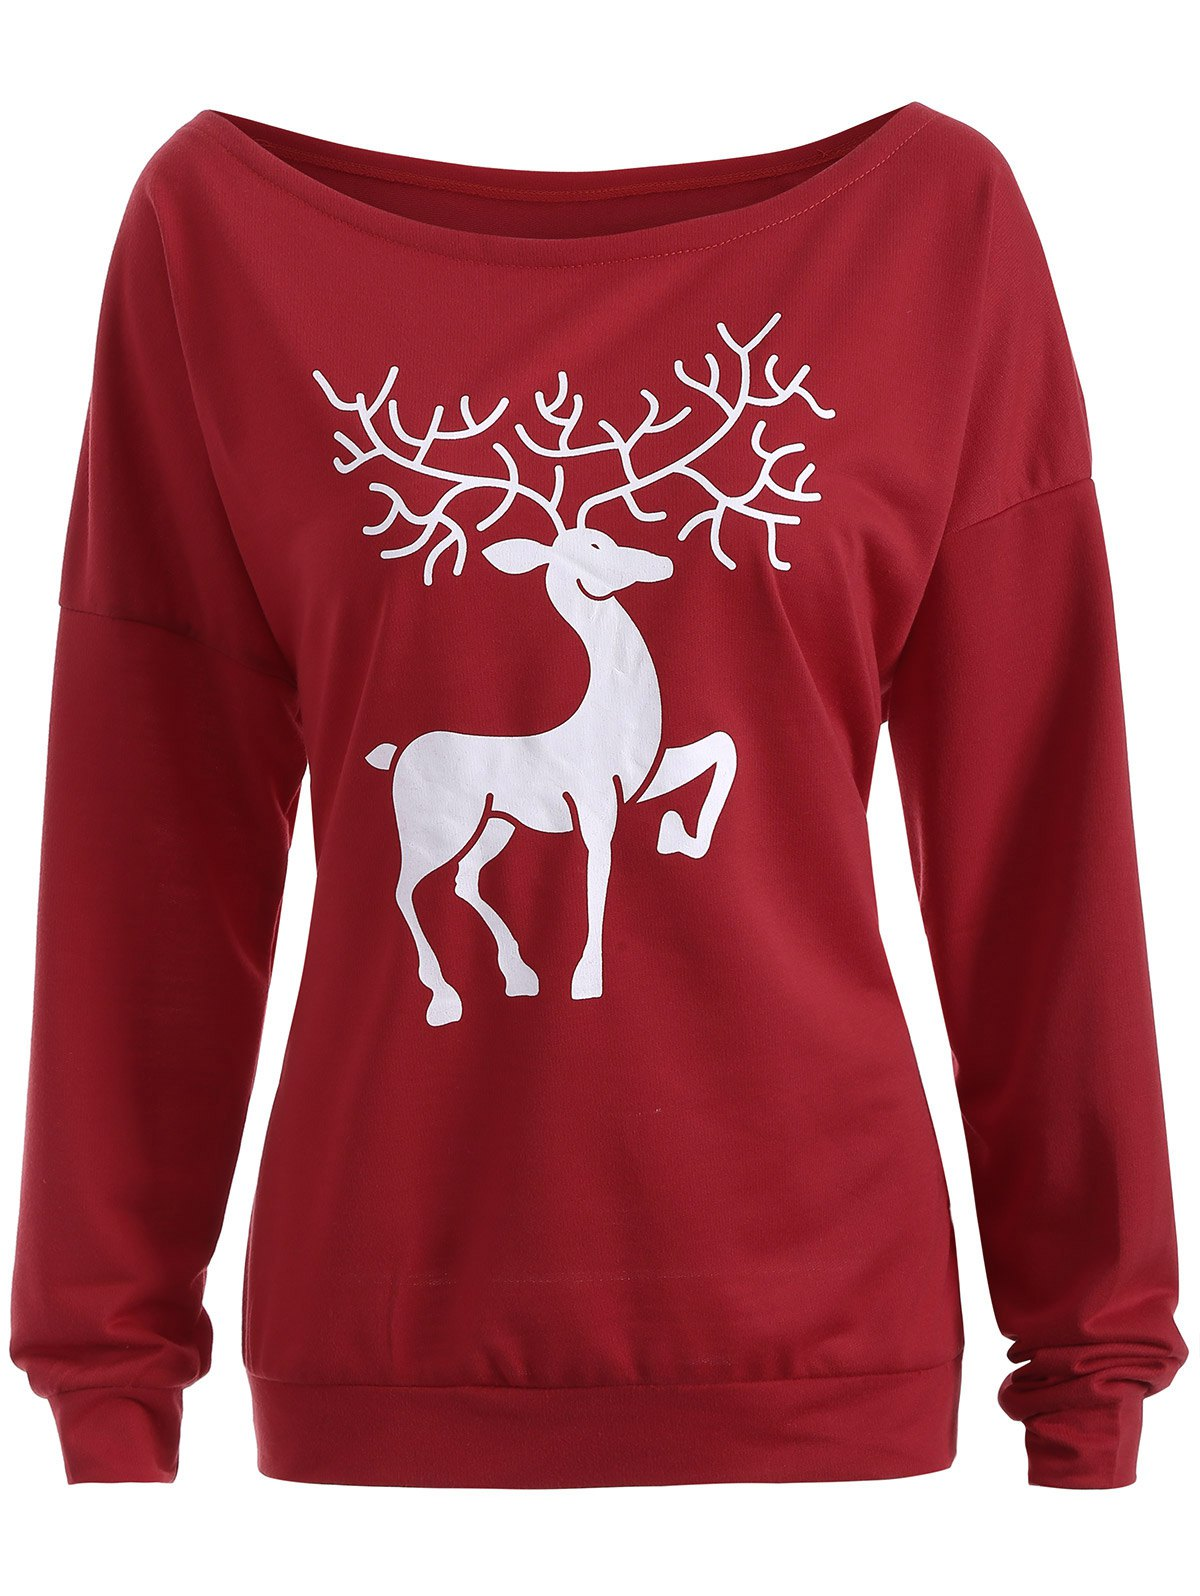 Christmas Reindeer Pullover SweatshirtWOMEN<br><br>Size: 2XL; Color: WINE RED; Material: Polyester,Spandex; Shirt Length: Regular; Sleeve Length: Full; Style: Streetwear; Pattern Style: Print; Season: Fall,Spring; Weight: 0.470kg; Package Contents: 1 x Sweatshirt;